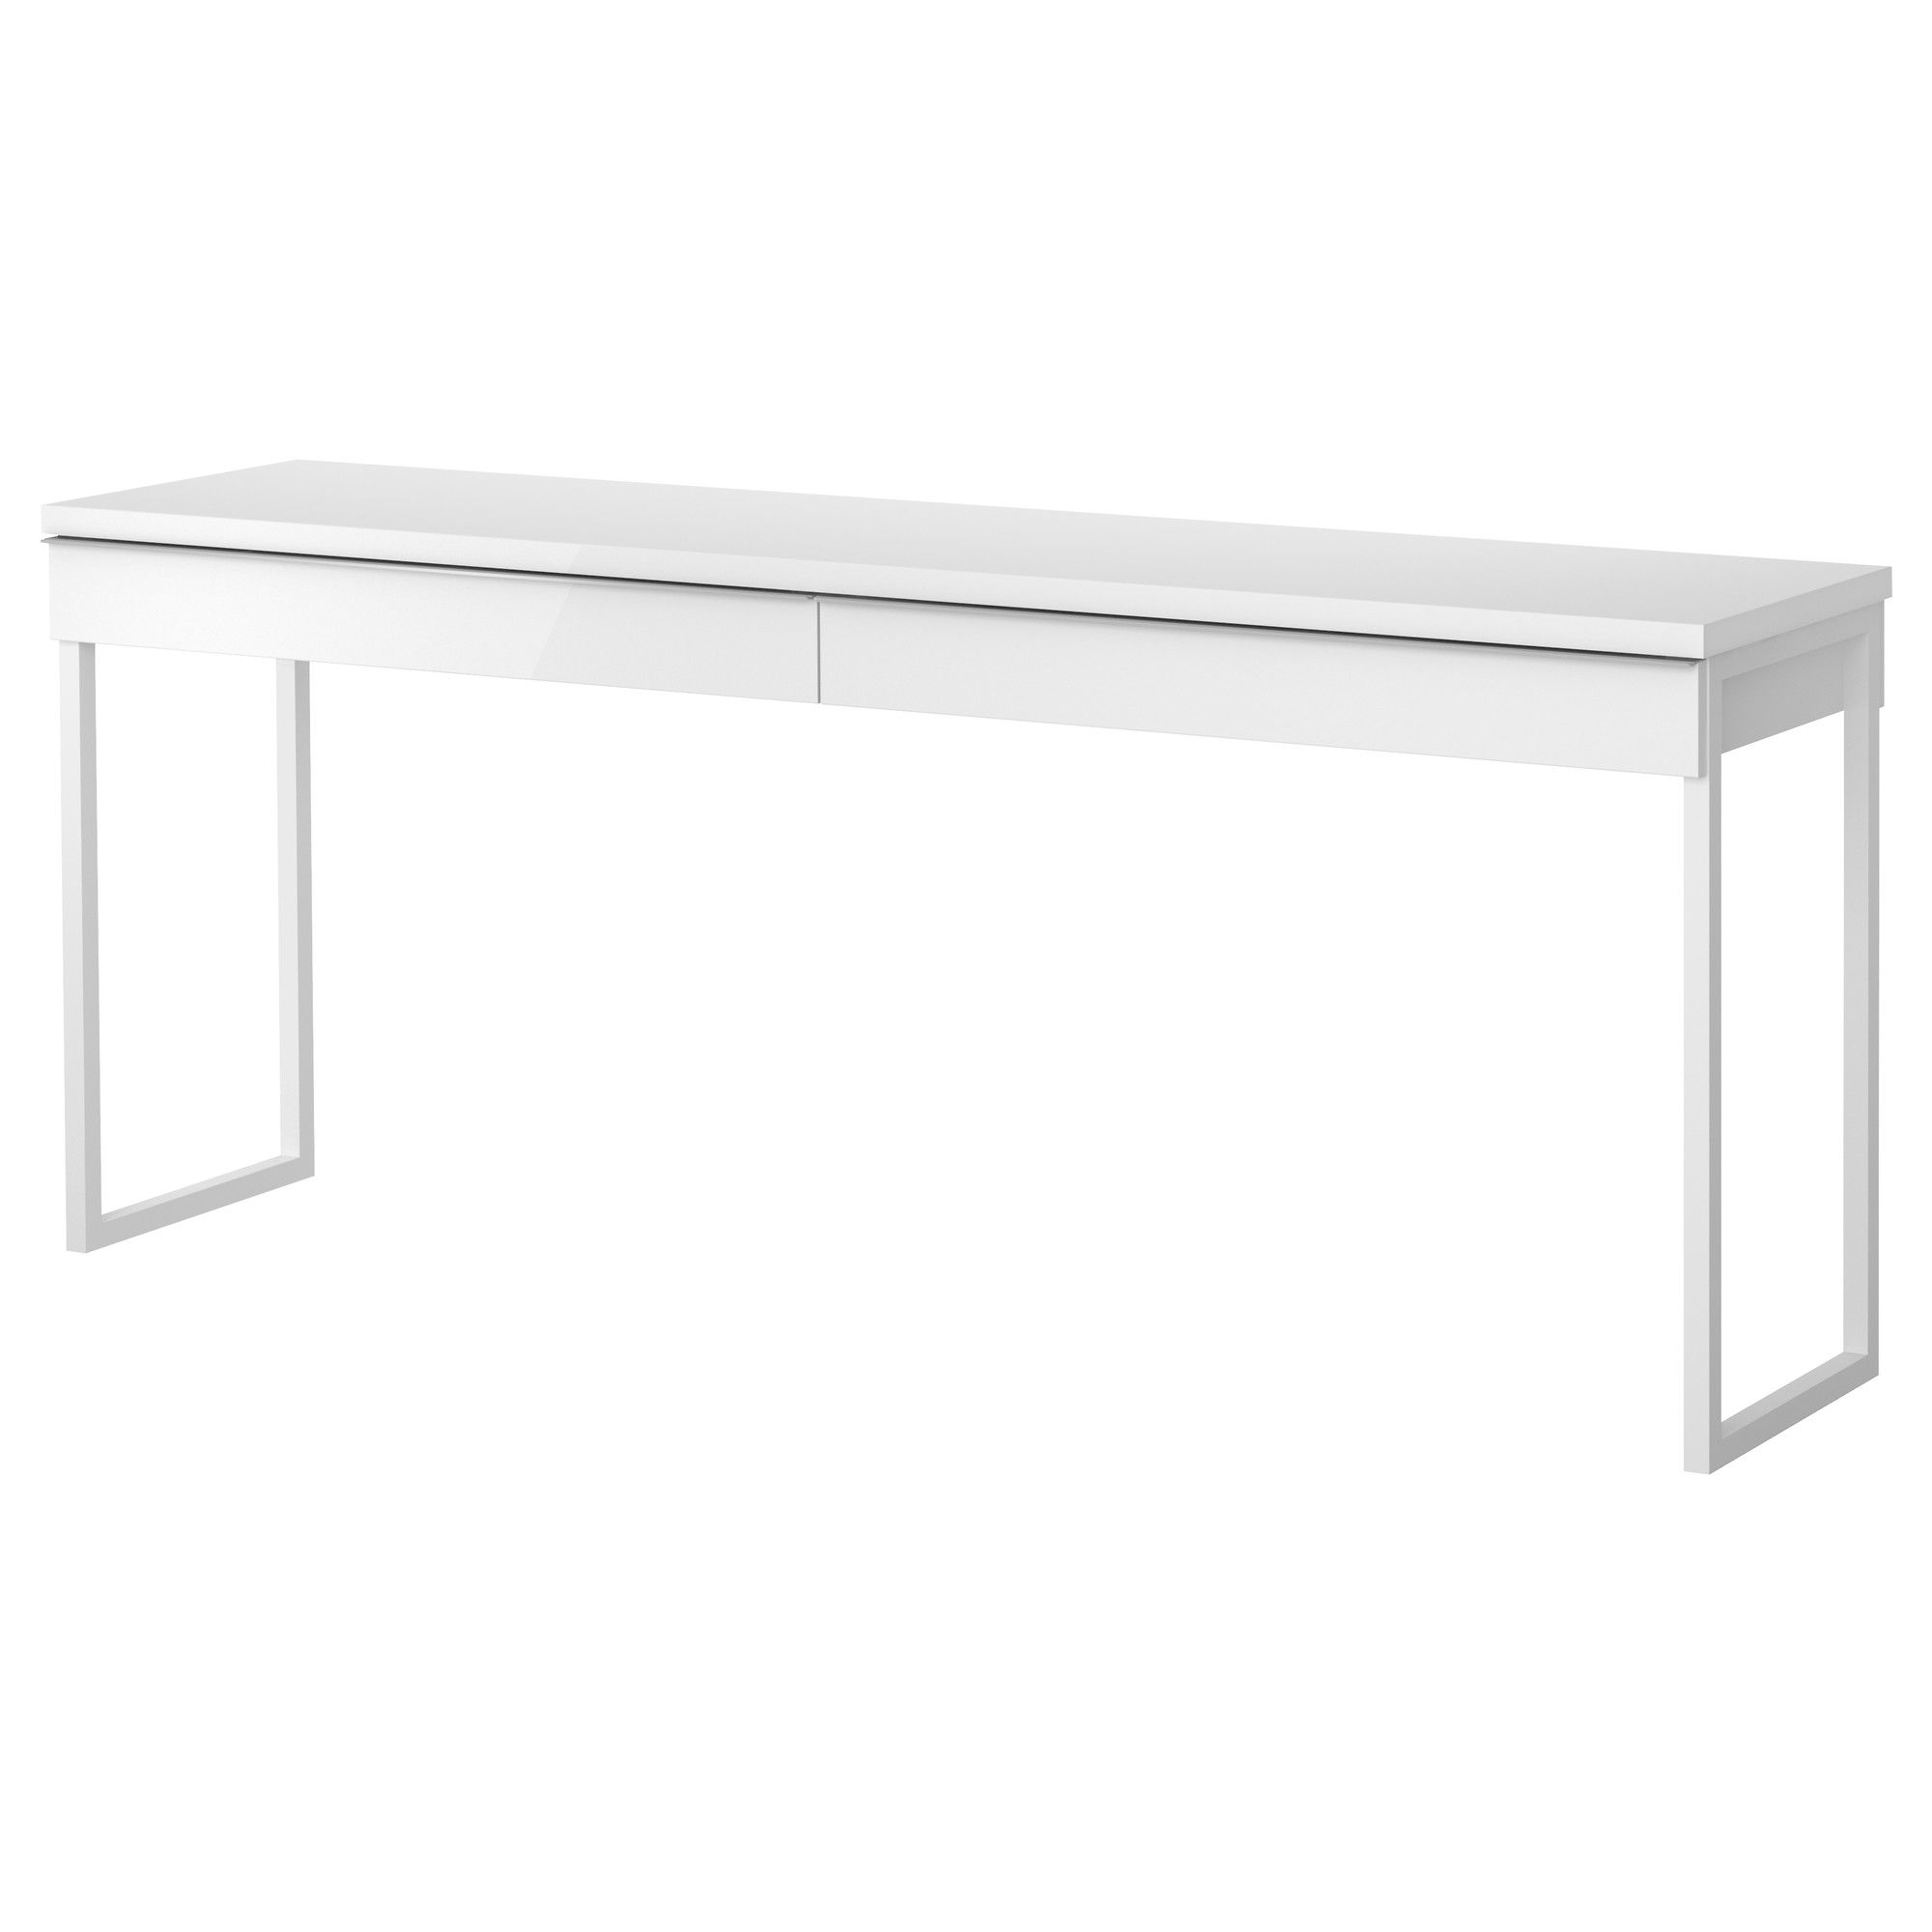 Attractive IKEA   BESTÅ BURS, Desk, , Two People Can Work Comfortably At The Desk With  This Long Table Top.Can Be Placed Anywhere In The Room Because The Back Is  ...